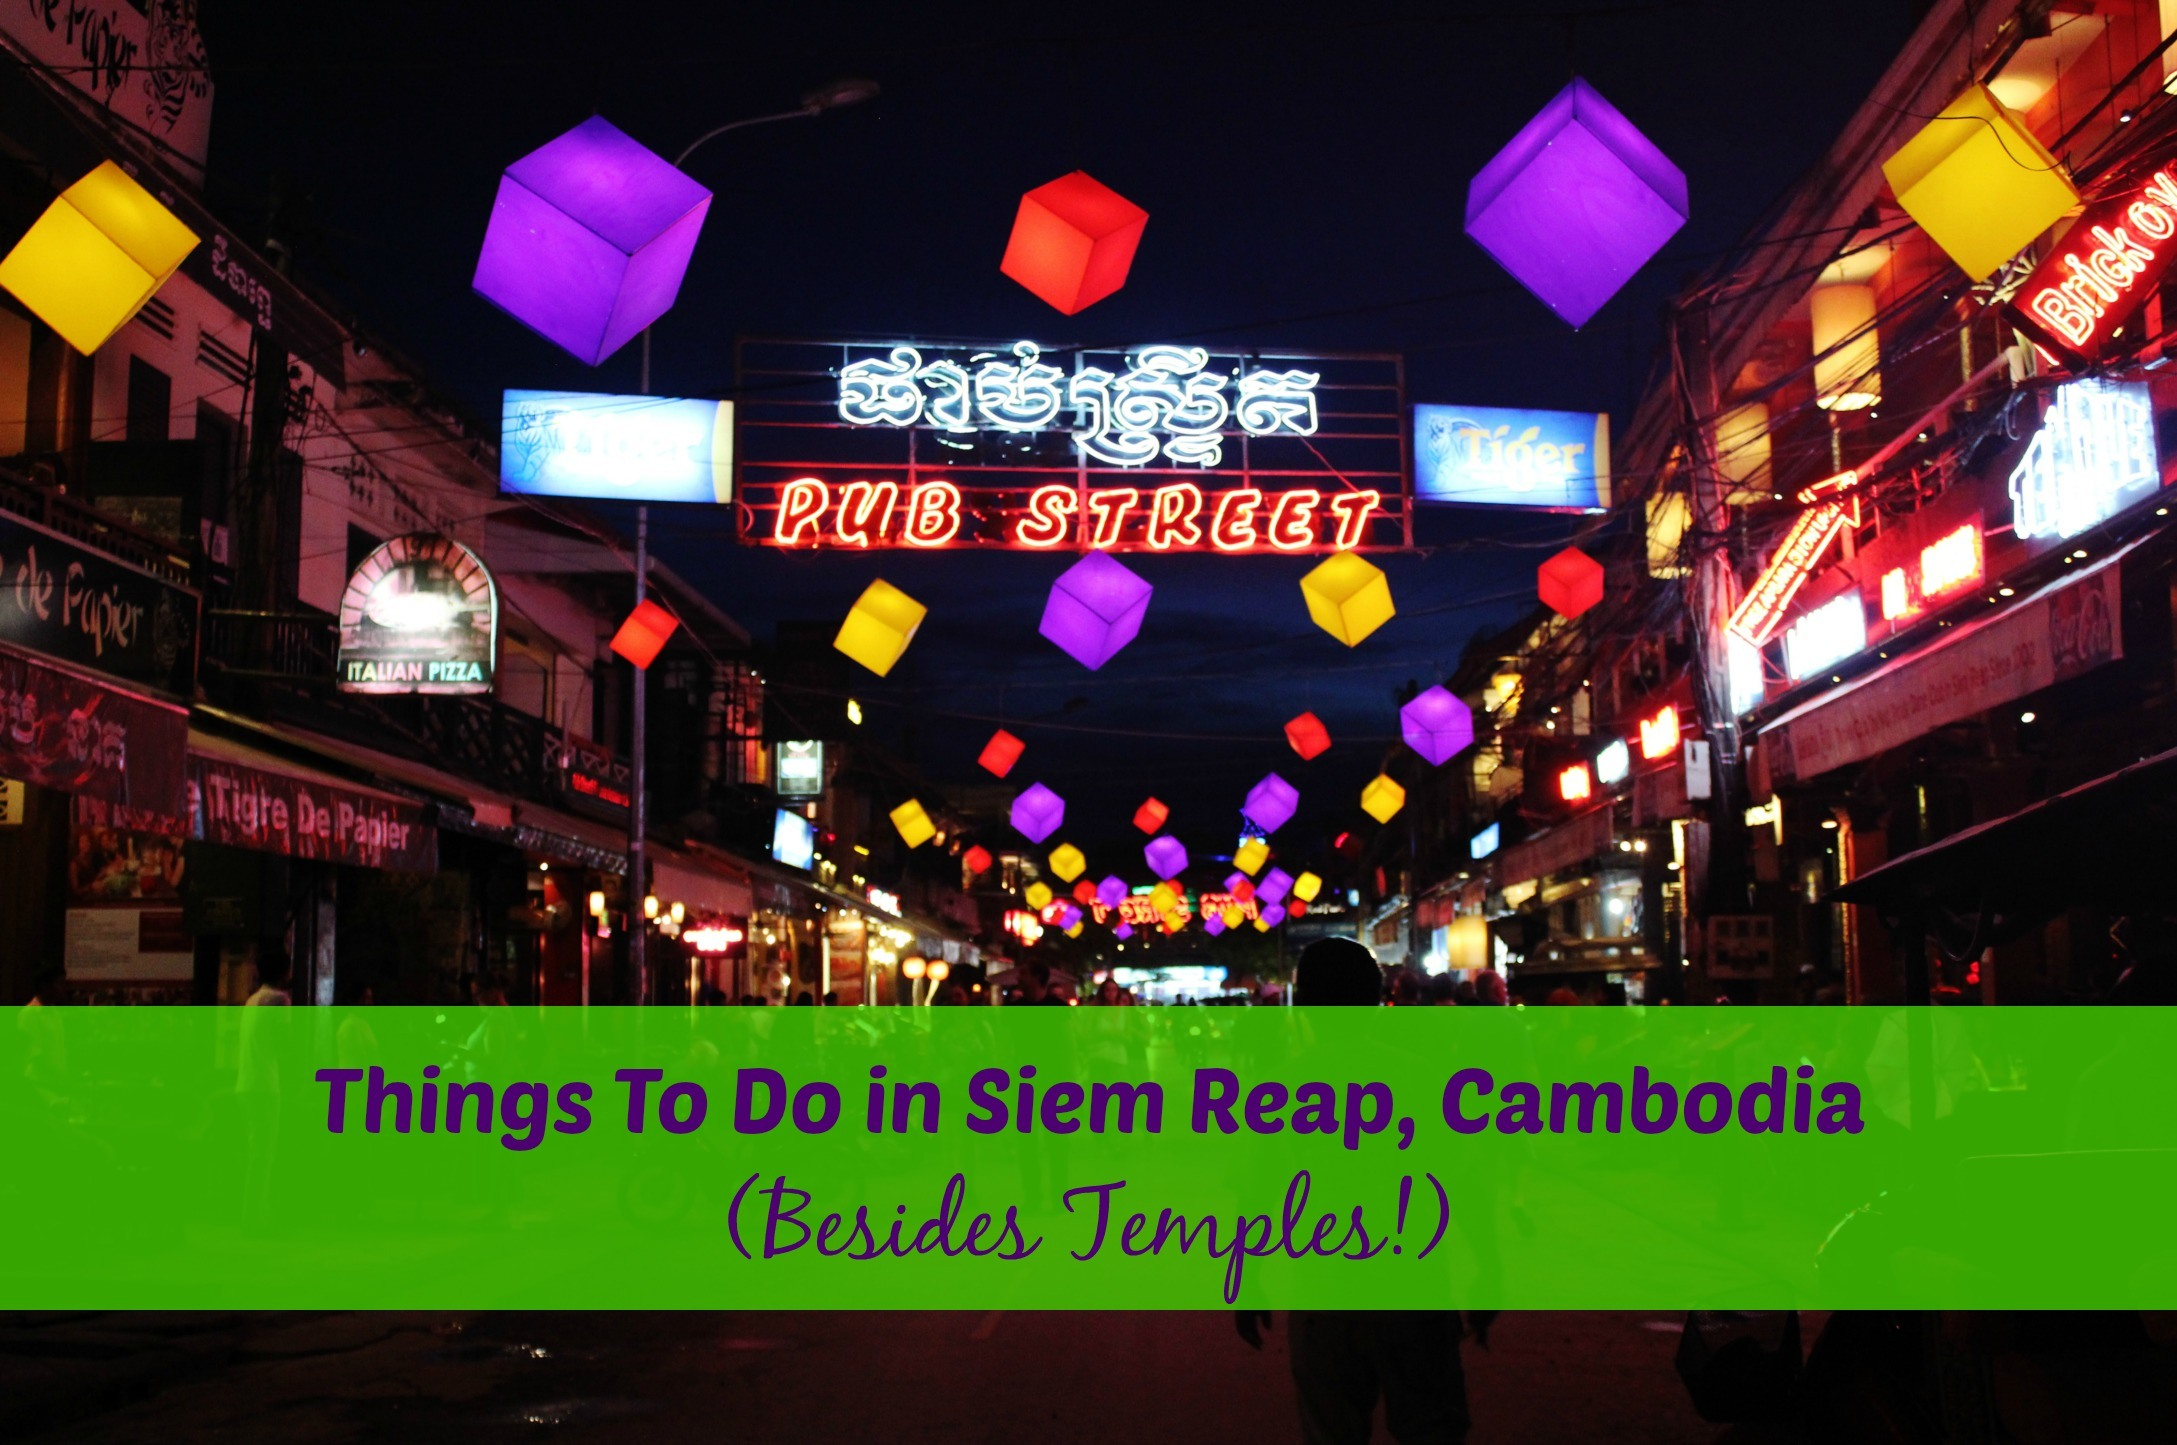 Things To Do in Siem Reap Besides Temples by JetSettingFools.com